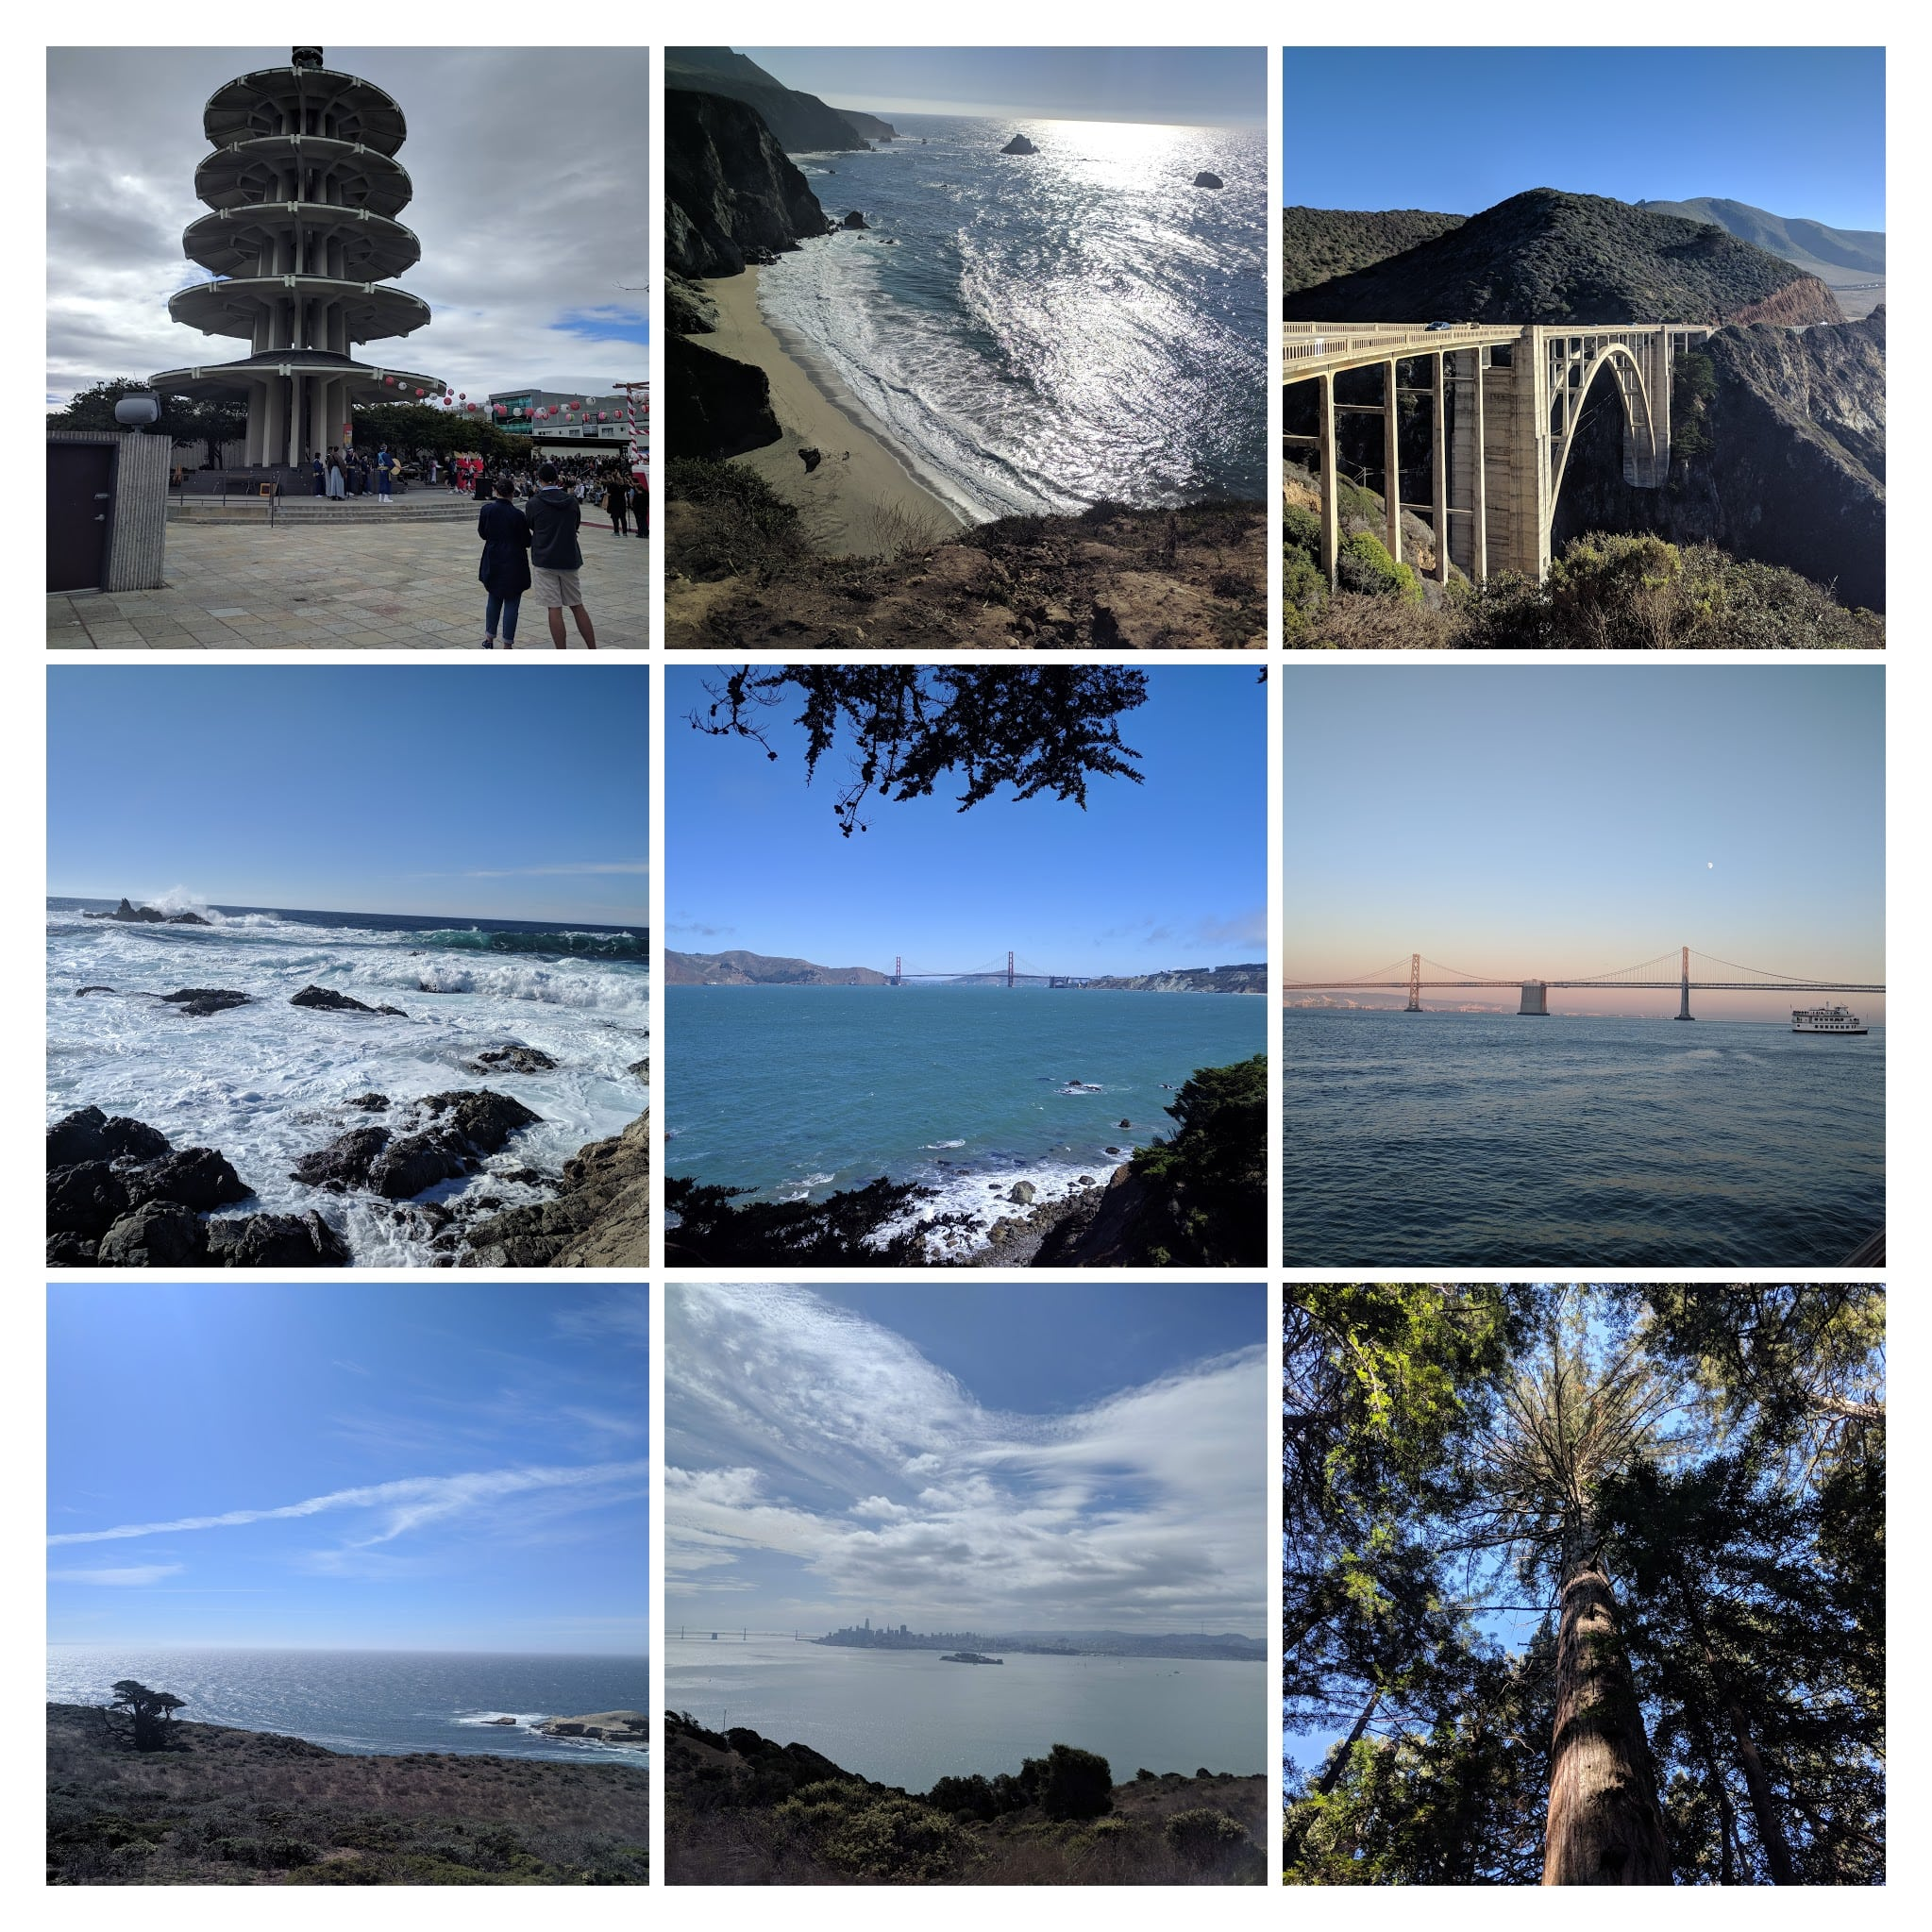 Collage of places visited in SF and the surrounding area